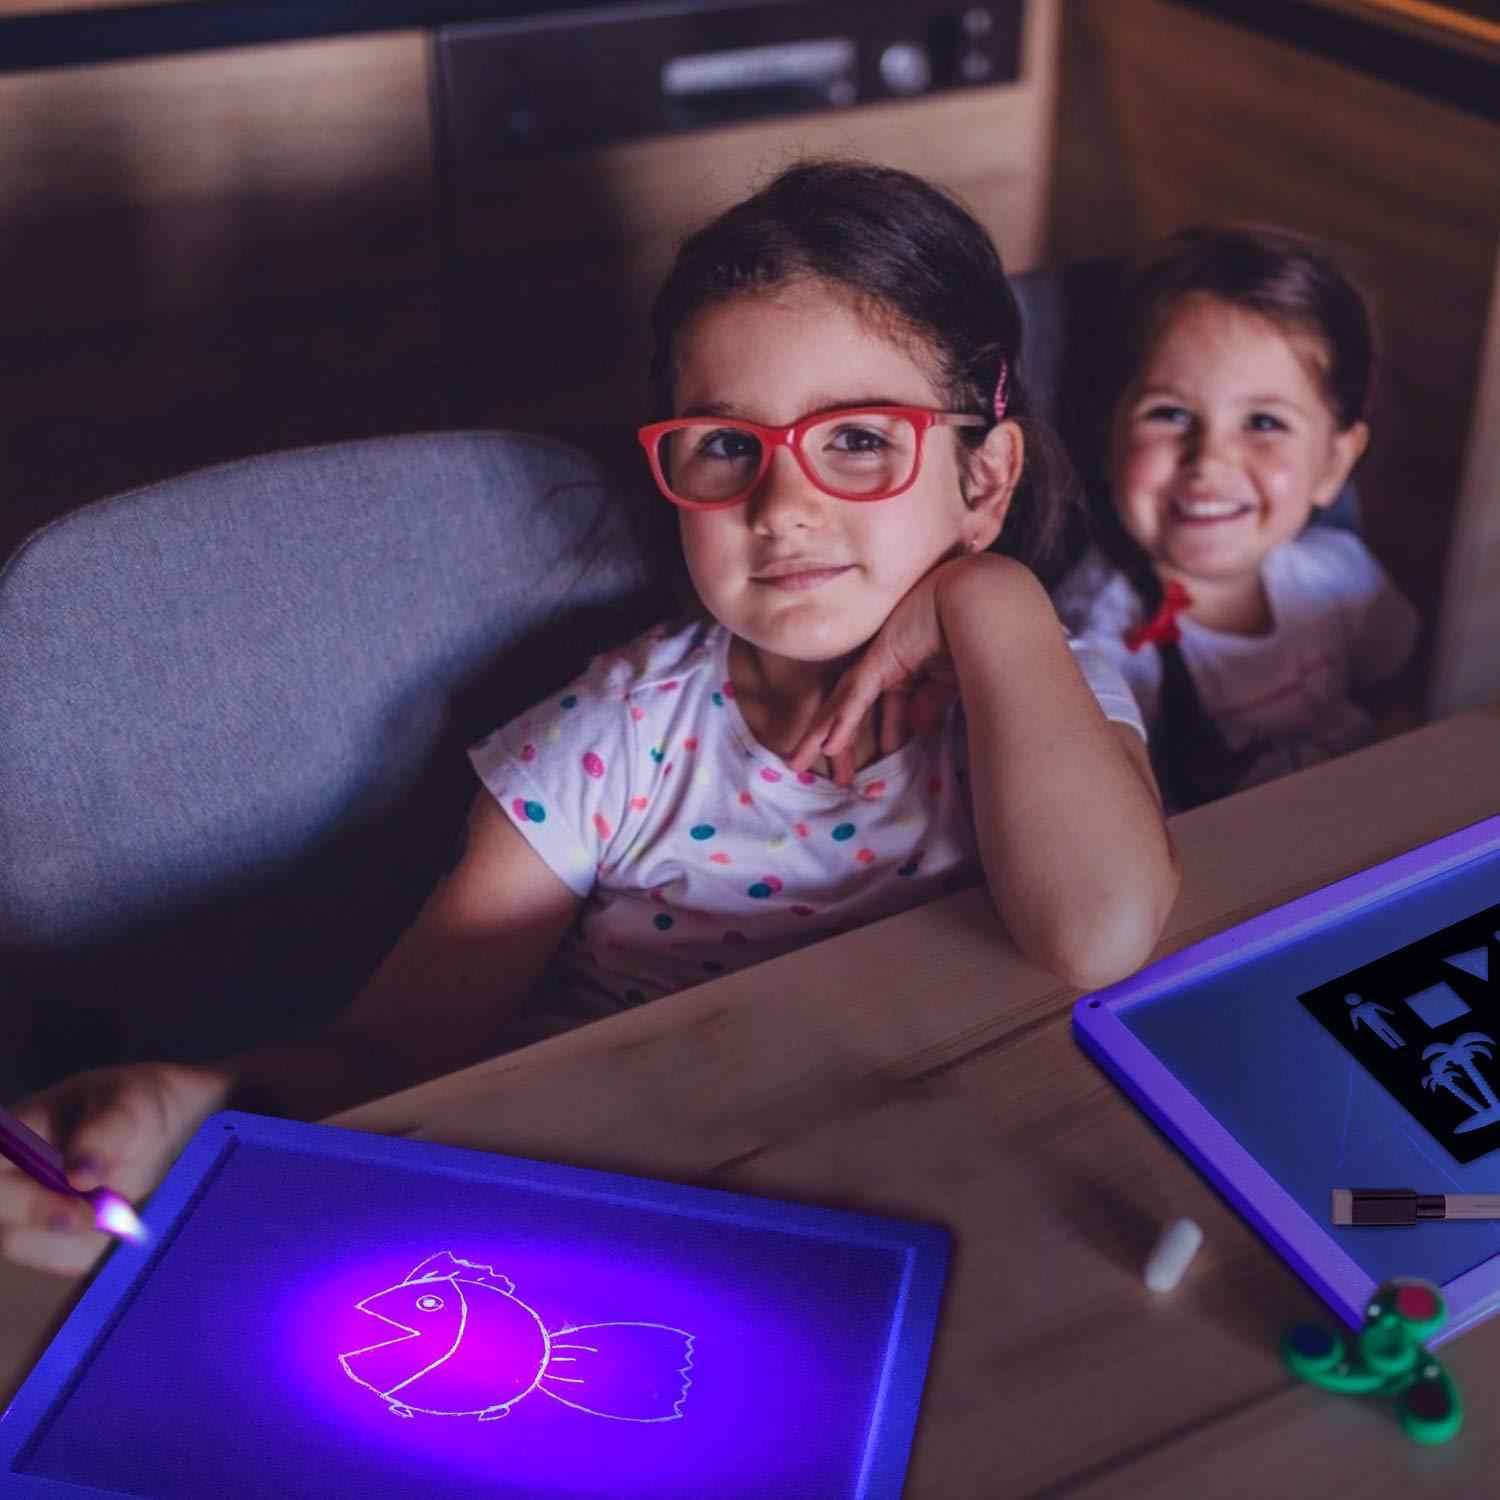 Draw with Light 3D Kids Drawing Toys Set A4 A3 A5 Night Light Drawing Board Tablet In Dark Child Fun Developing Drop Shipping